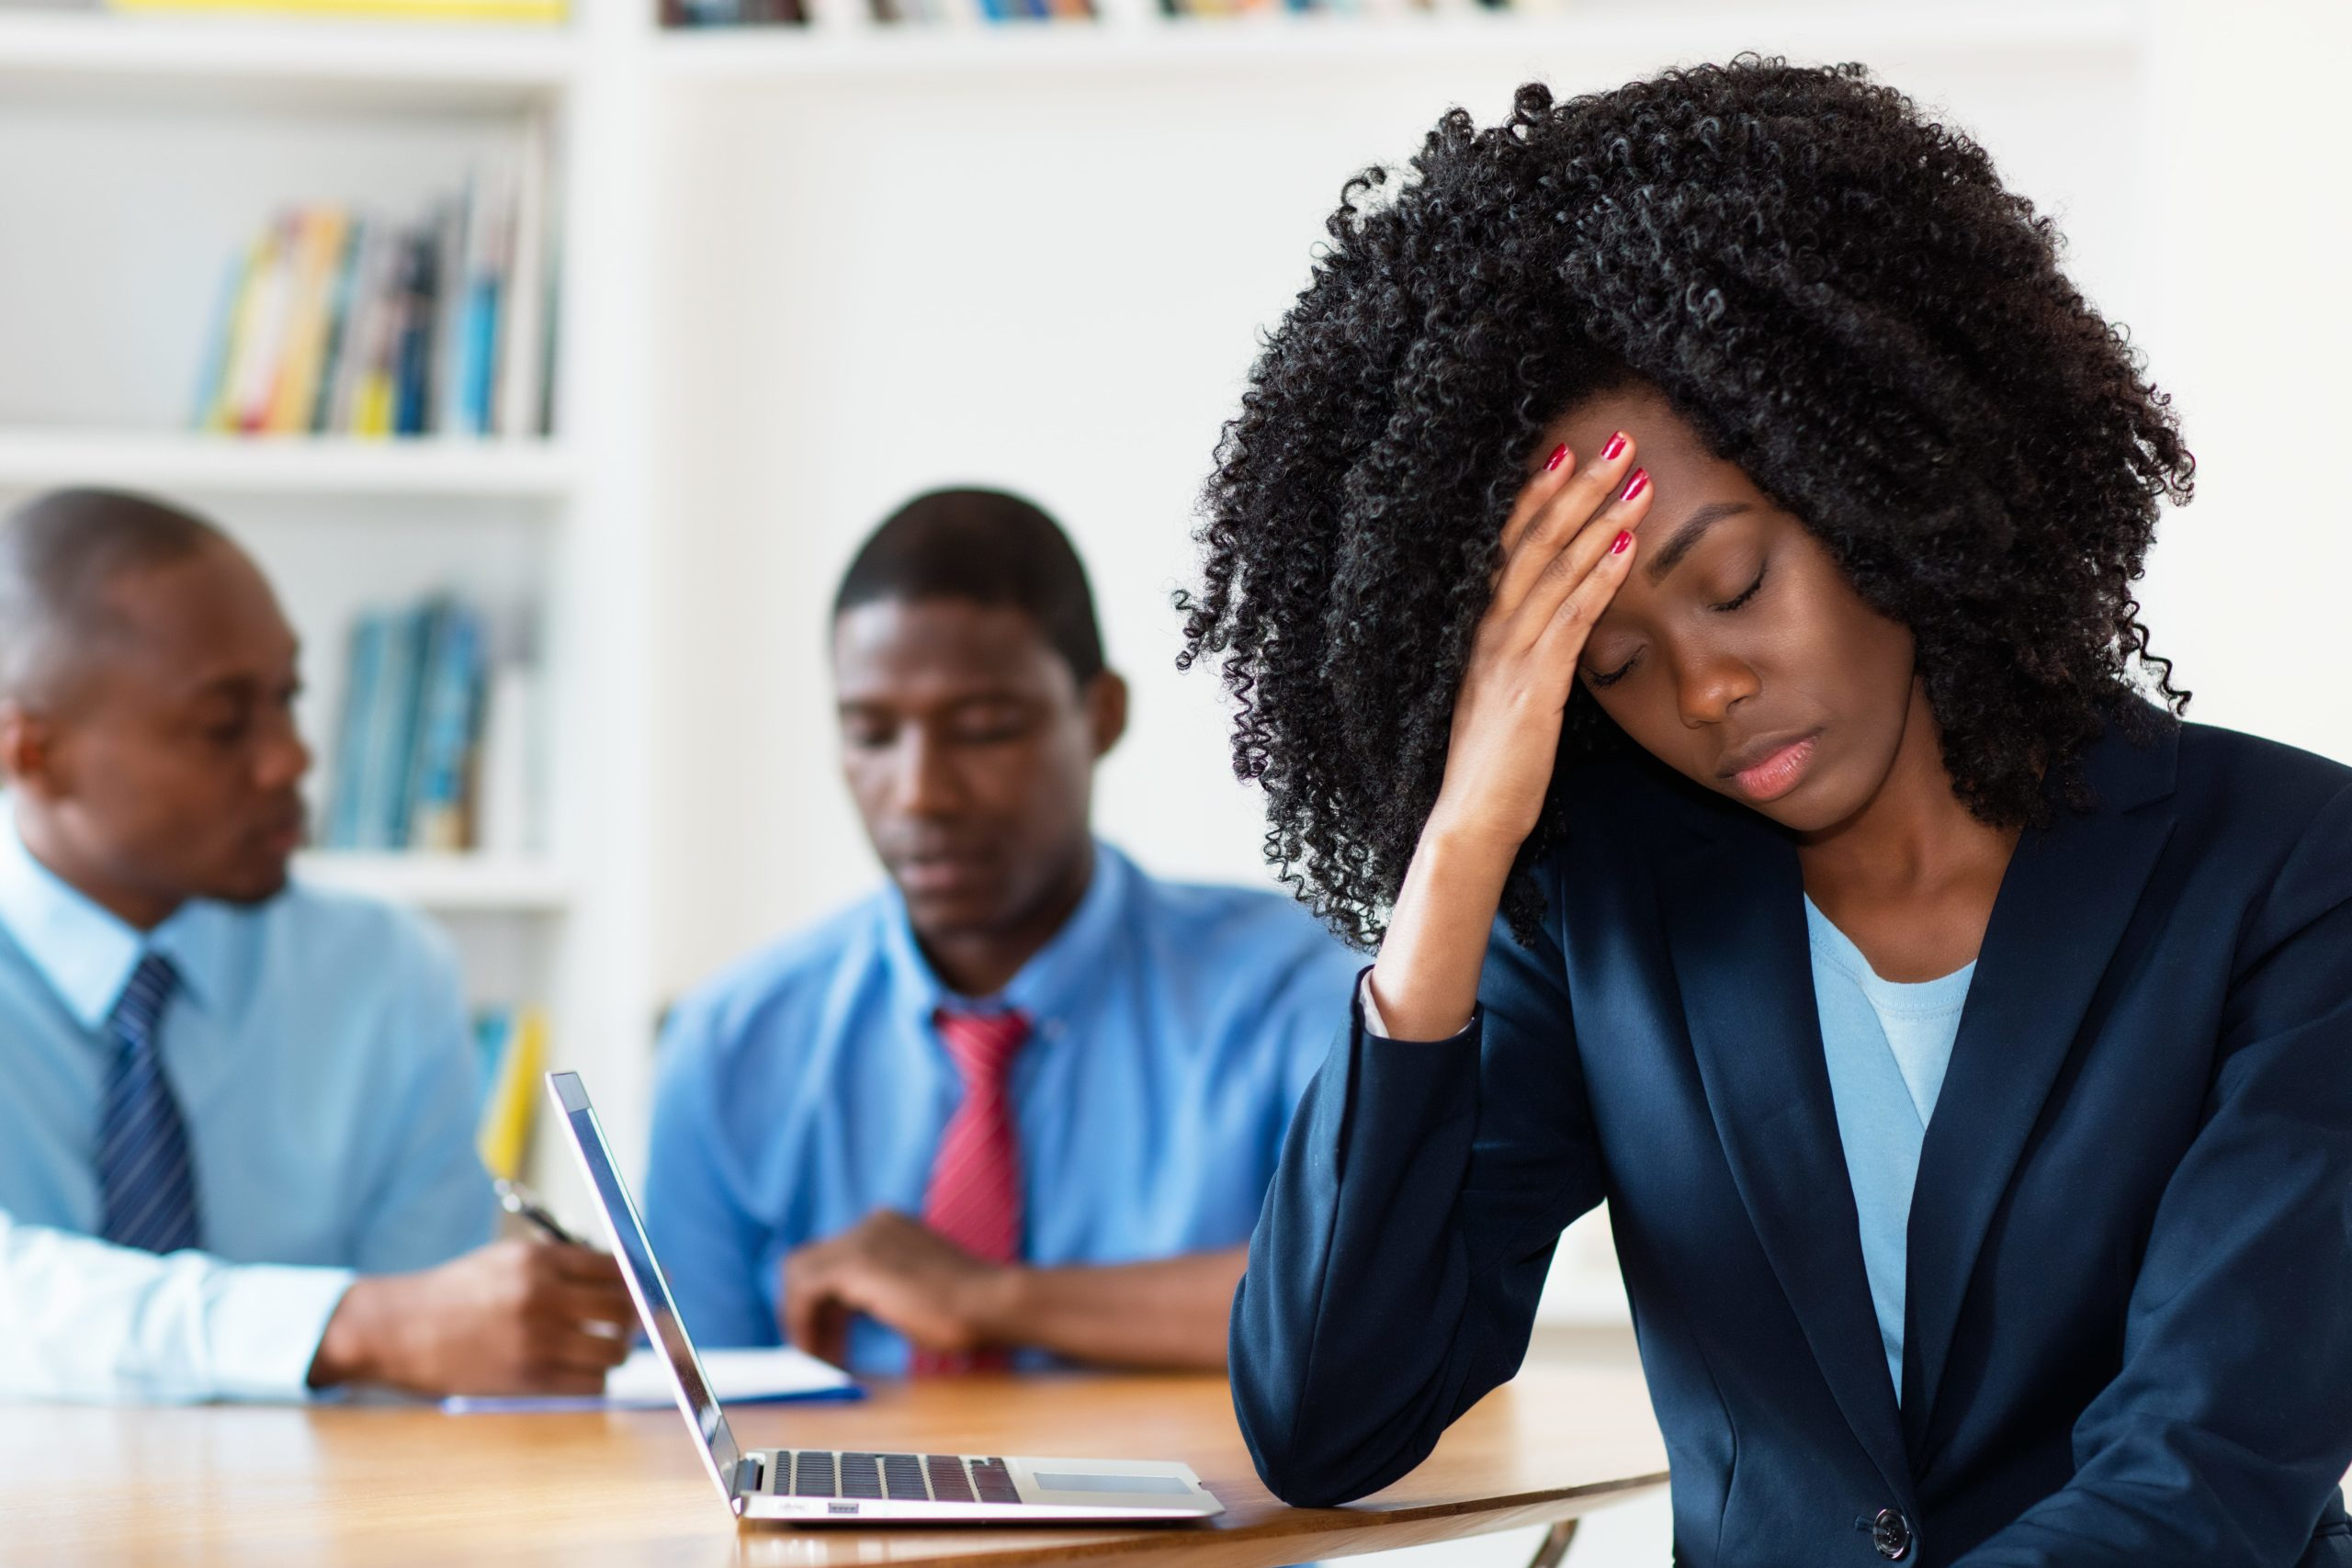 A young business woman laments how a hostile work environment is damaging her heath and career prospects.